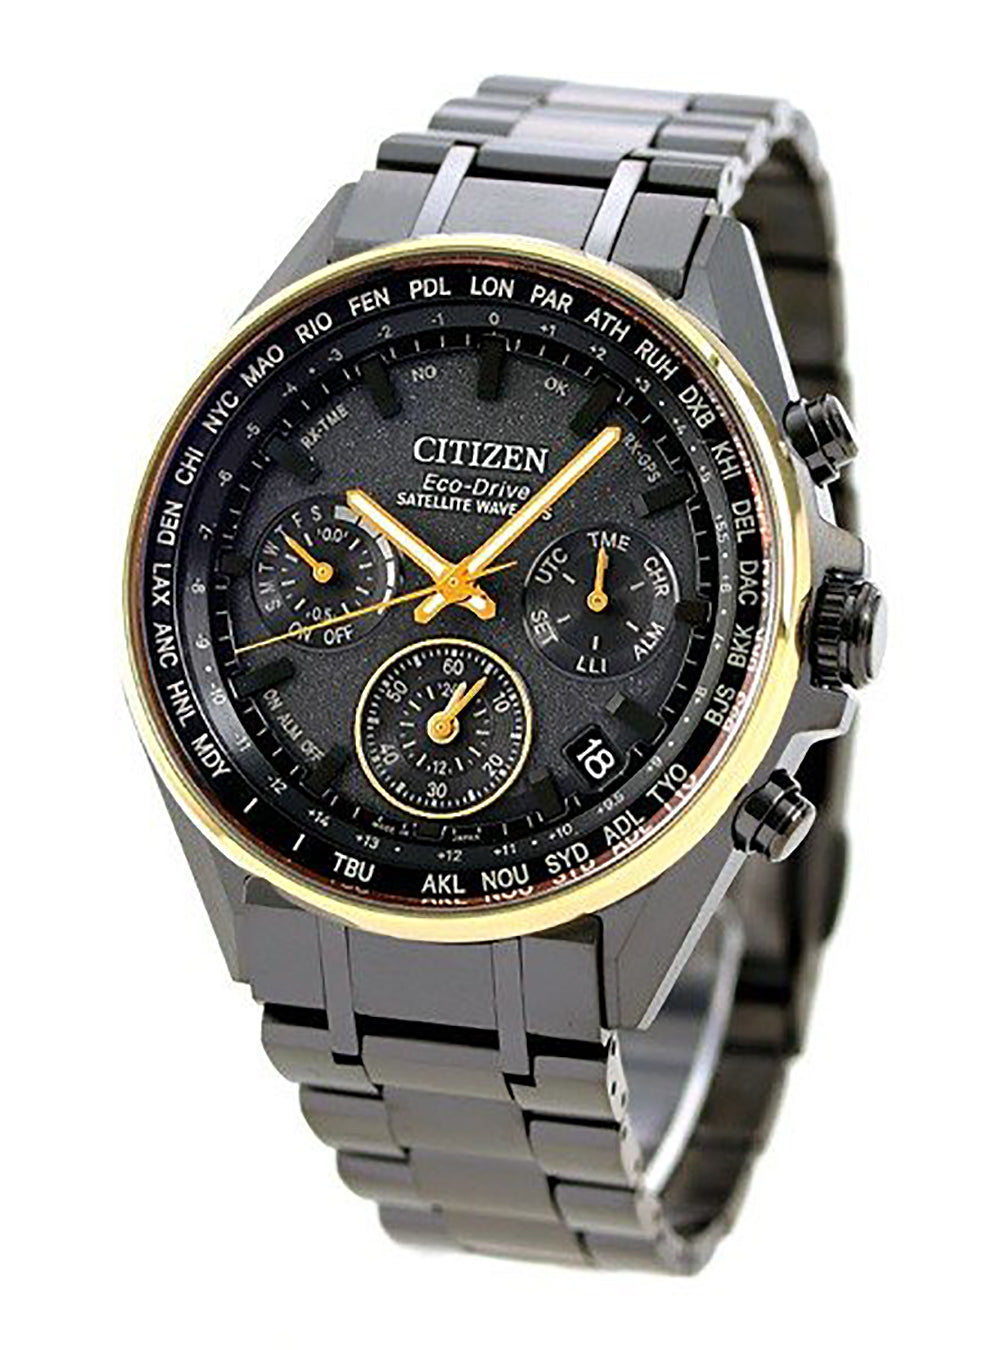 Citizen Attesa CC4004-58F Eco-Drive Satellite Wave GPS 100th Anniversary Limited 1,000 Made in japan JDM (Japanese Domestic Market)